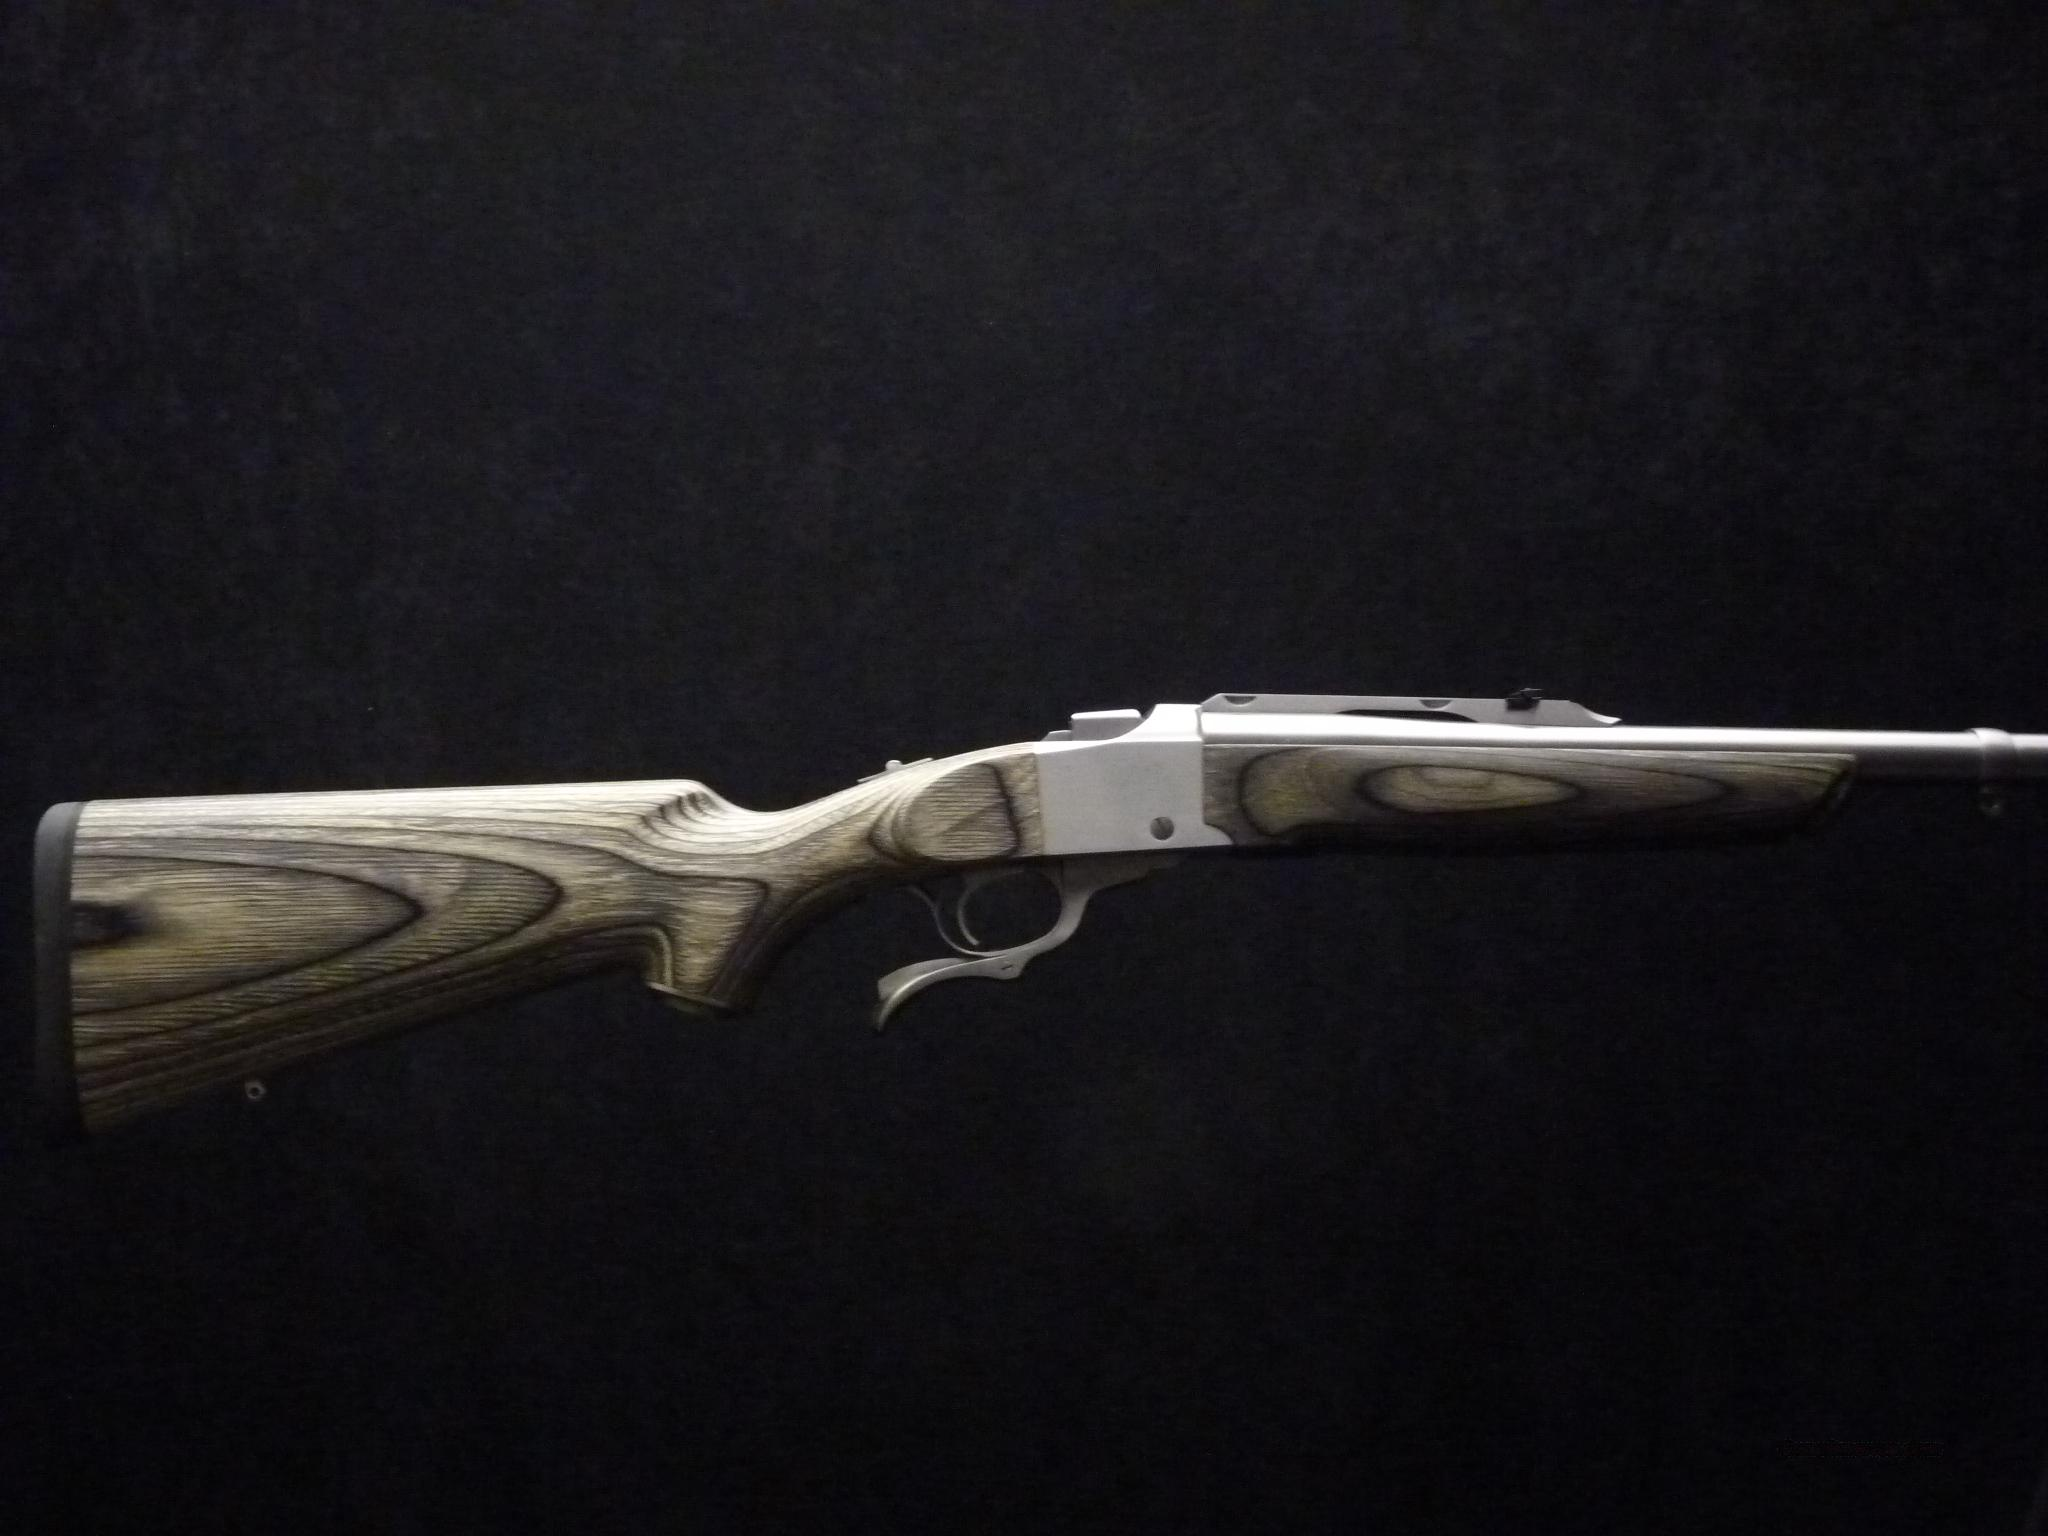 Ruger No 1 405 Win Stainless Laminated NIB  Guns > Rifles > Ruger Rifles > #1 Type